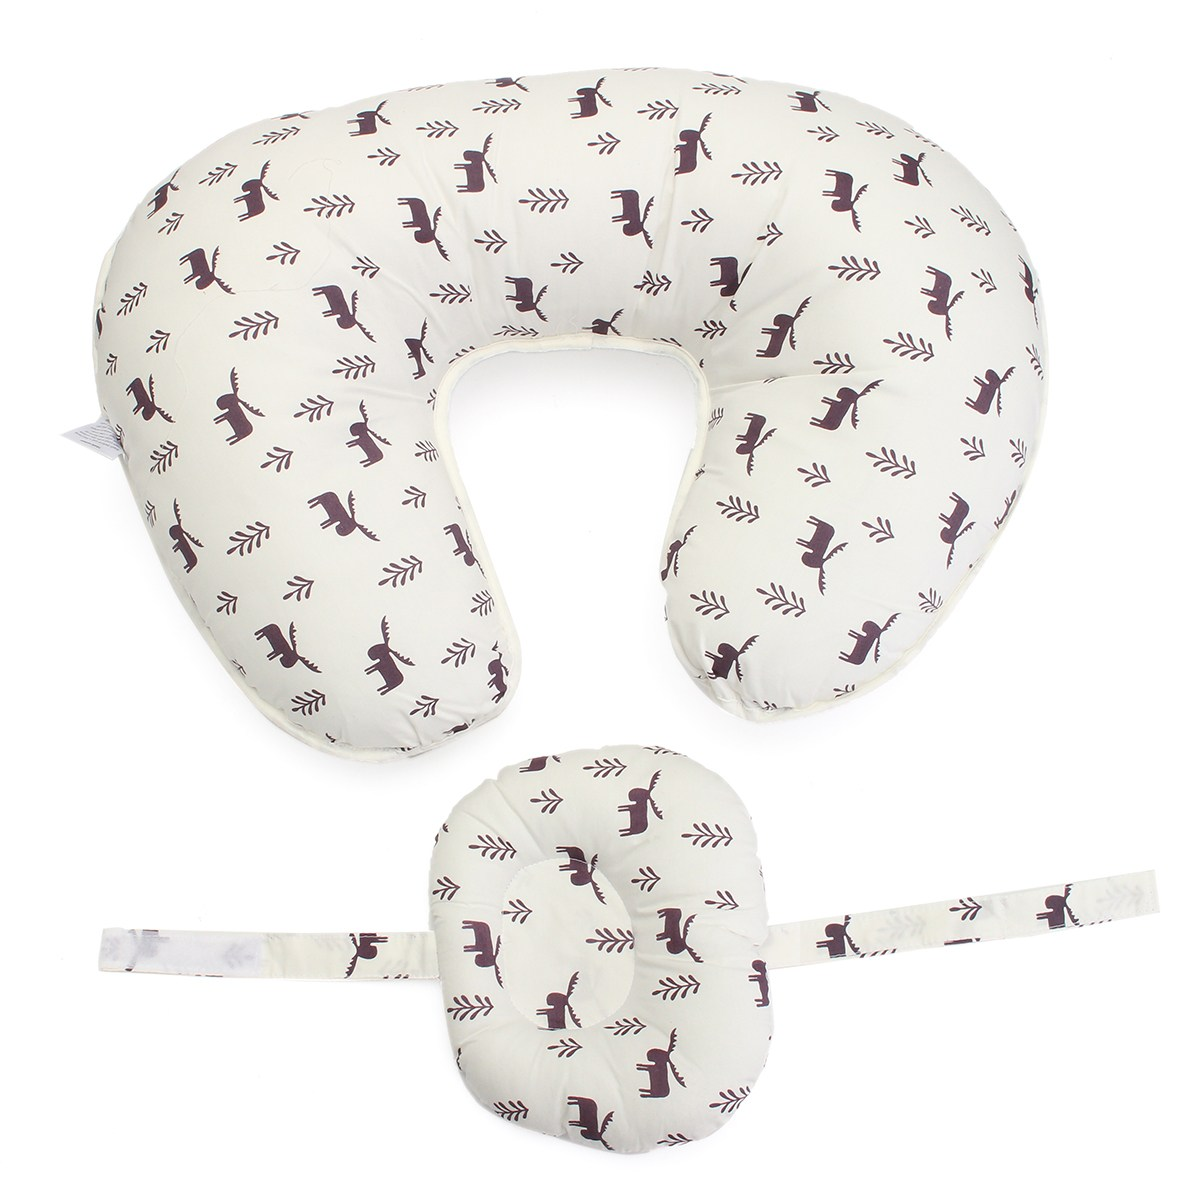 Pillow Feeding Nursing Multi-functional Infant Removable Cover Maternity Breast Cushion Cute Animal Pattern Baby Support Safety